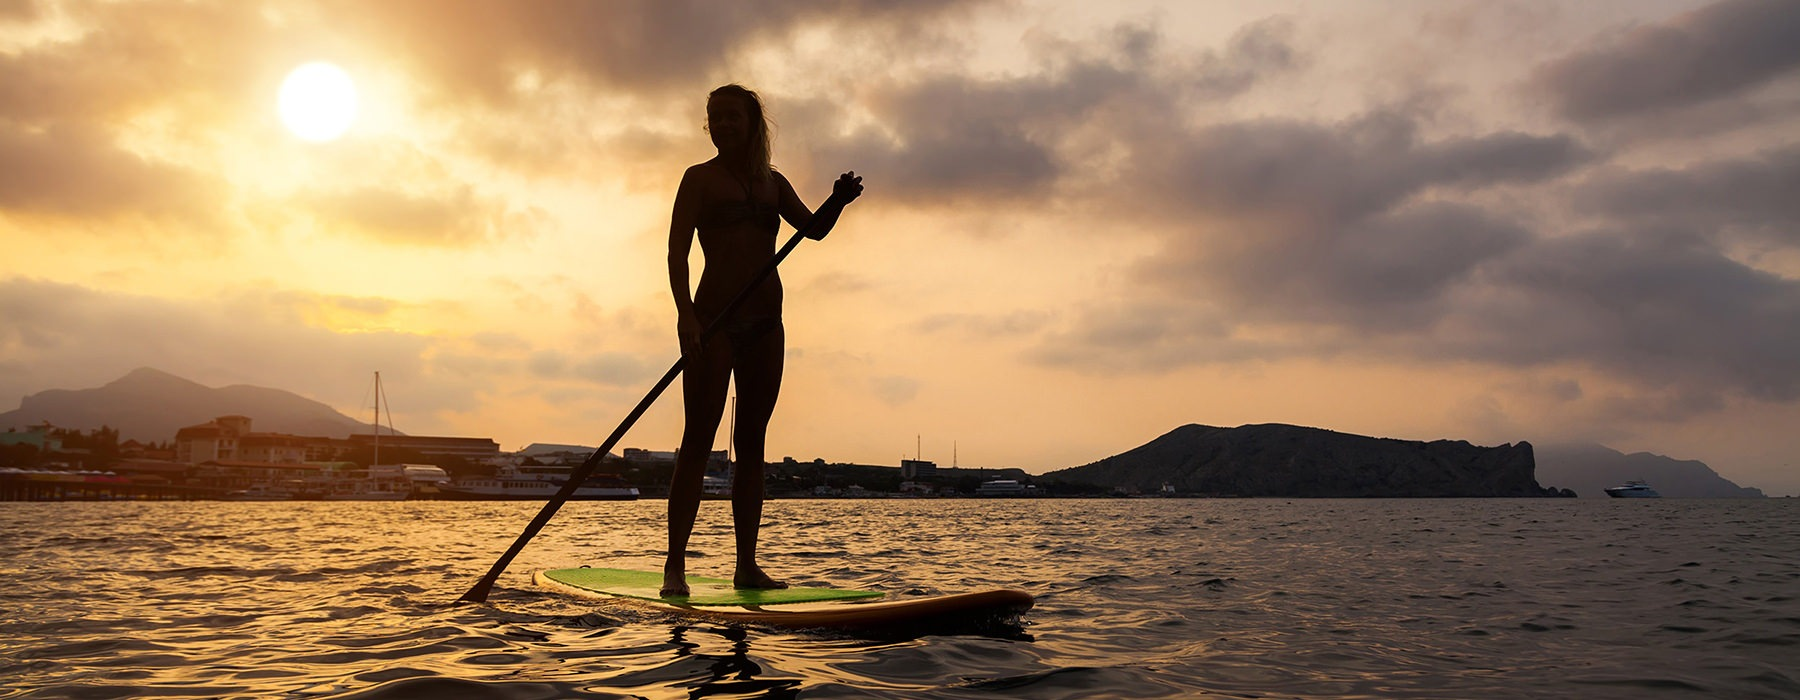 silhouette of woman on paddle board in the middle of the lake